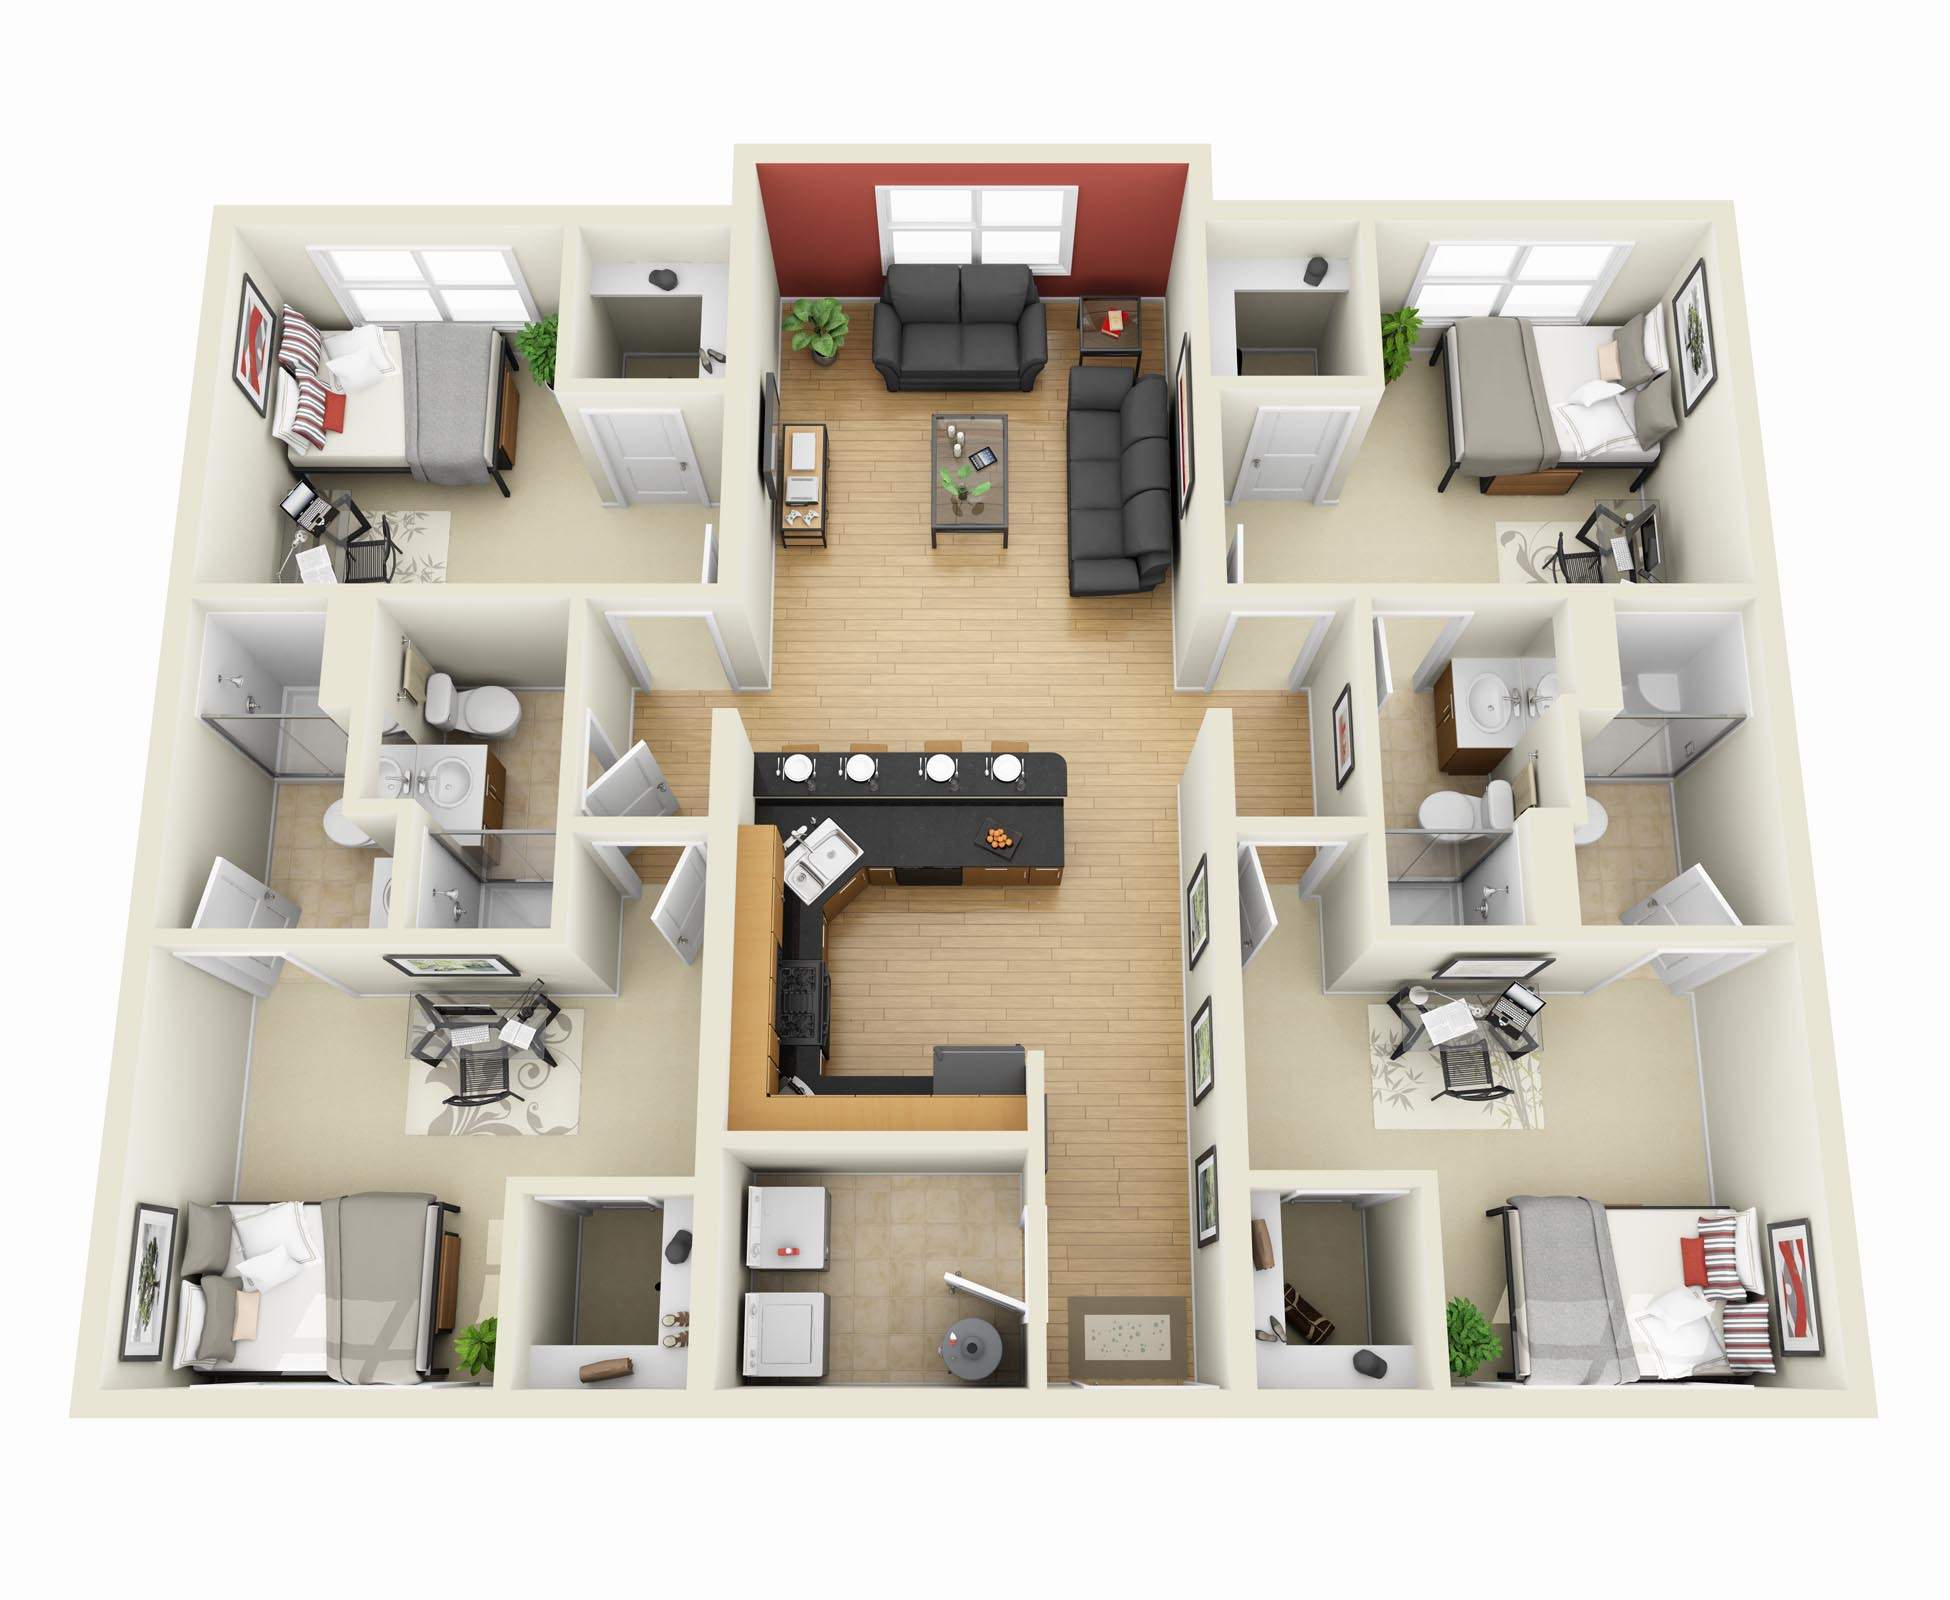 Best ideas about 4 Bedroom Apartments . Save or Pin 4 Bedroom Apartment House Plans Now.